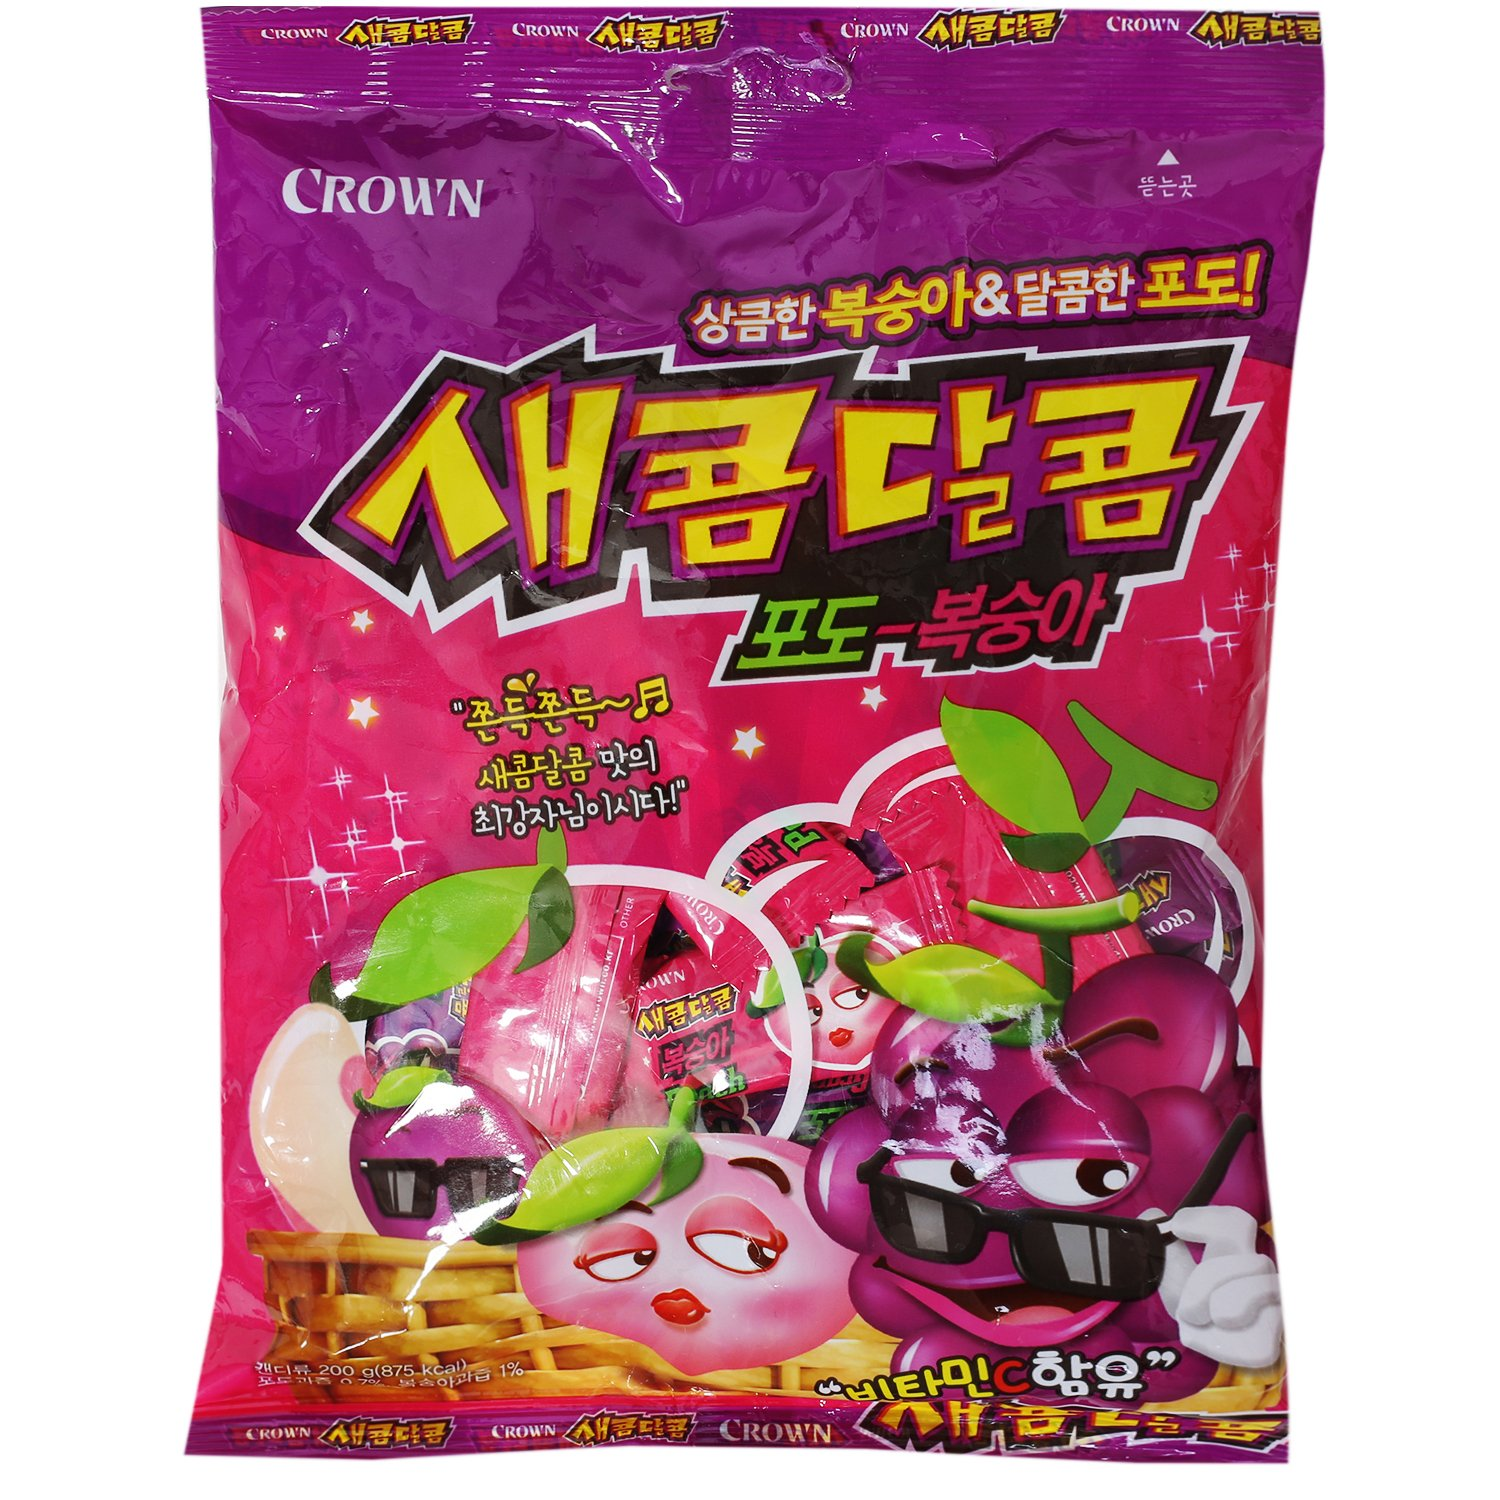 Korean Grape and Peach Flavored Chewy Sweet and Sour Candy 200g (1 Pack) by Crown